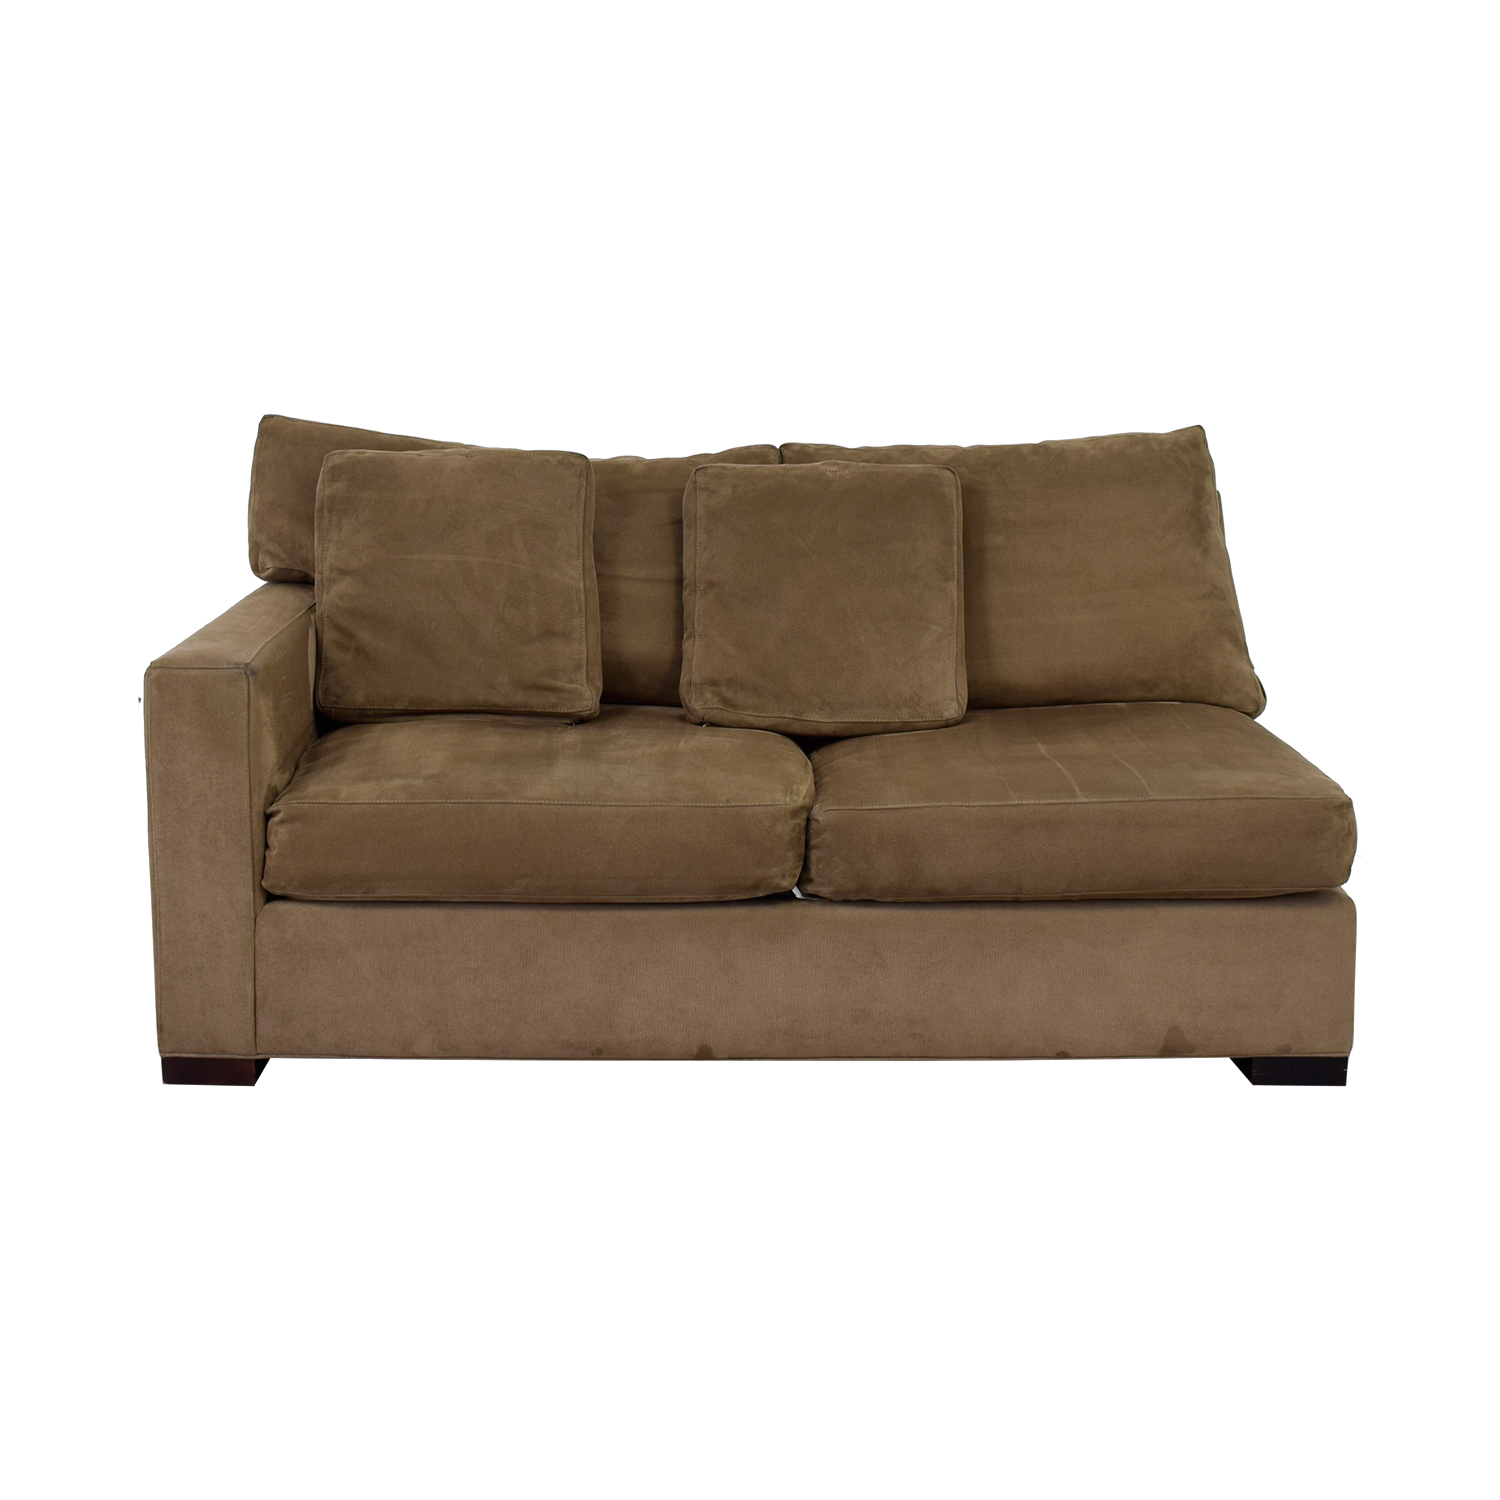 Crate & Barrel Crate & Barrel Grey Two-Cushion One Armed Sofa Classic Sofas